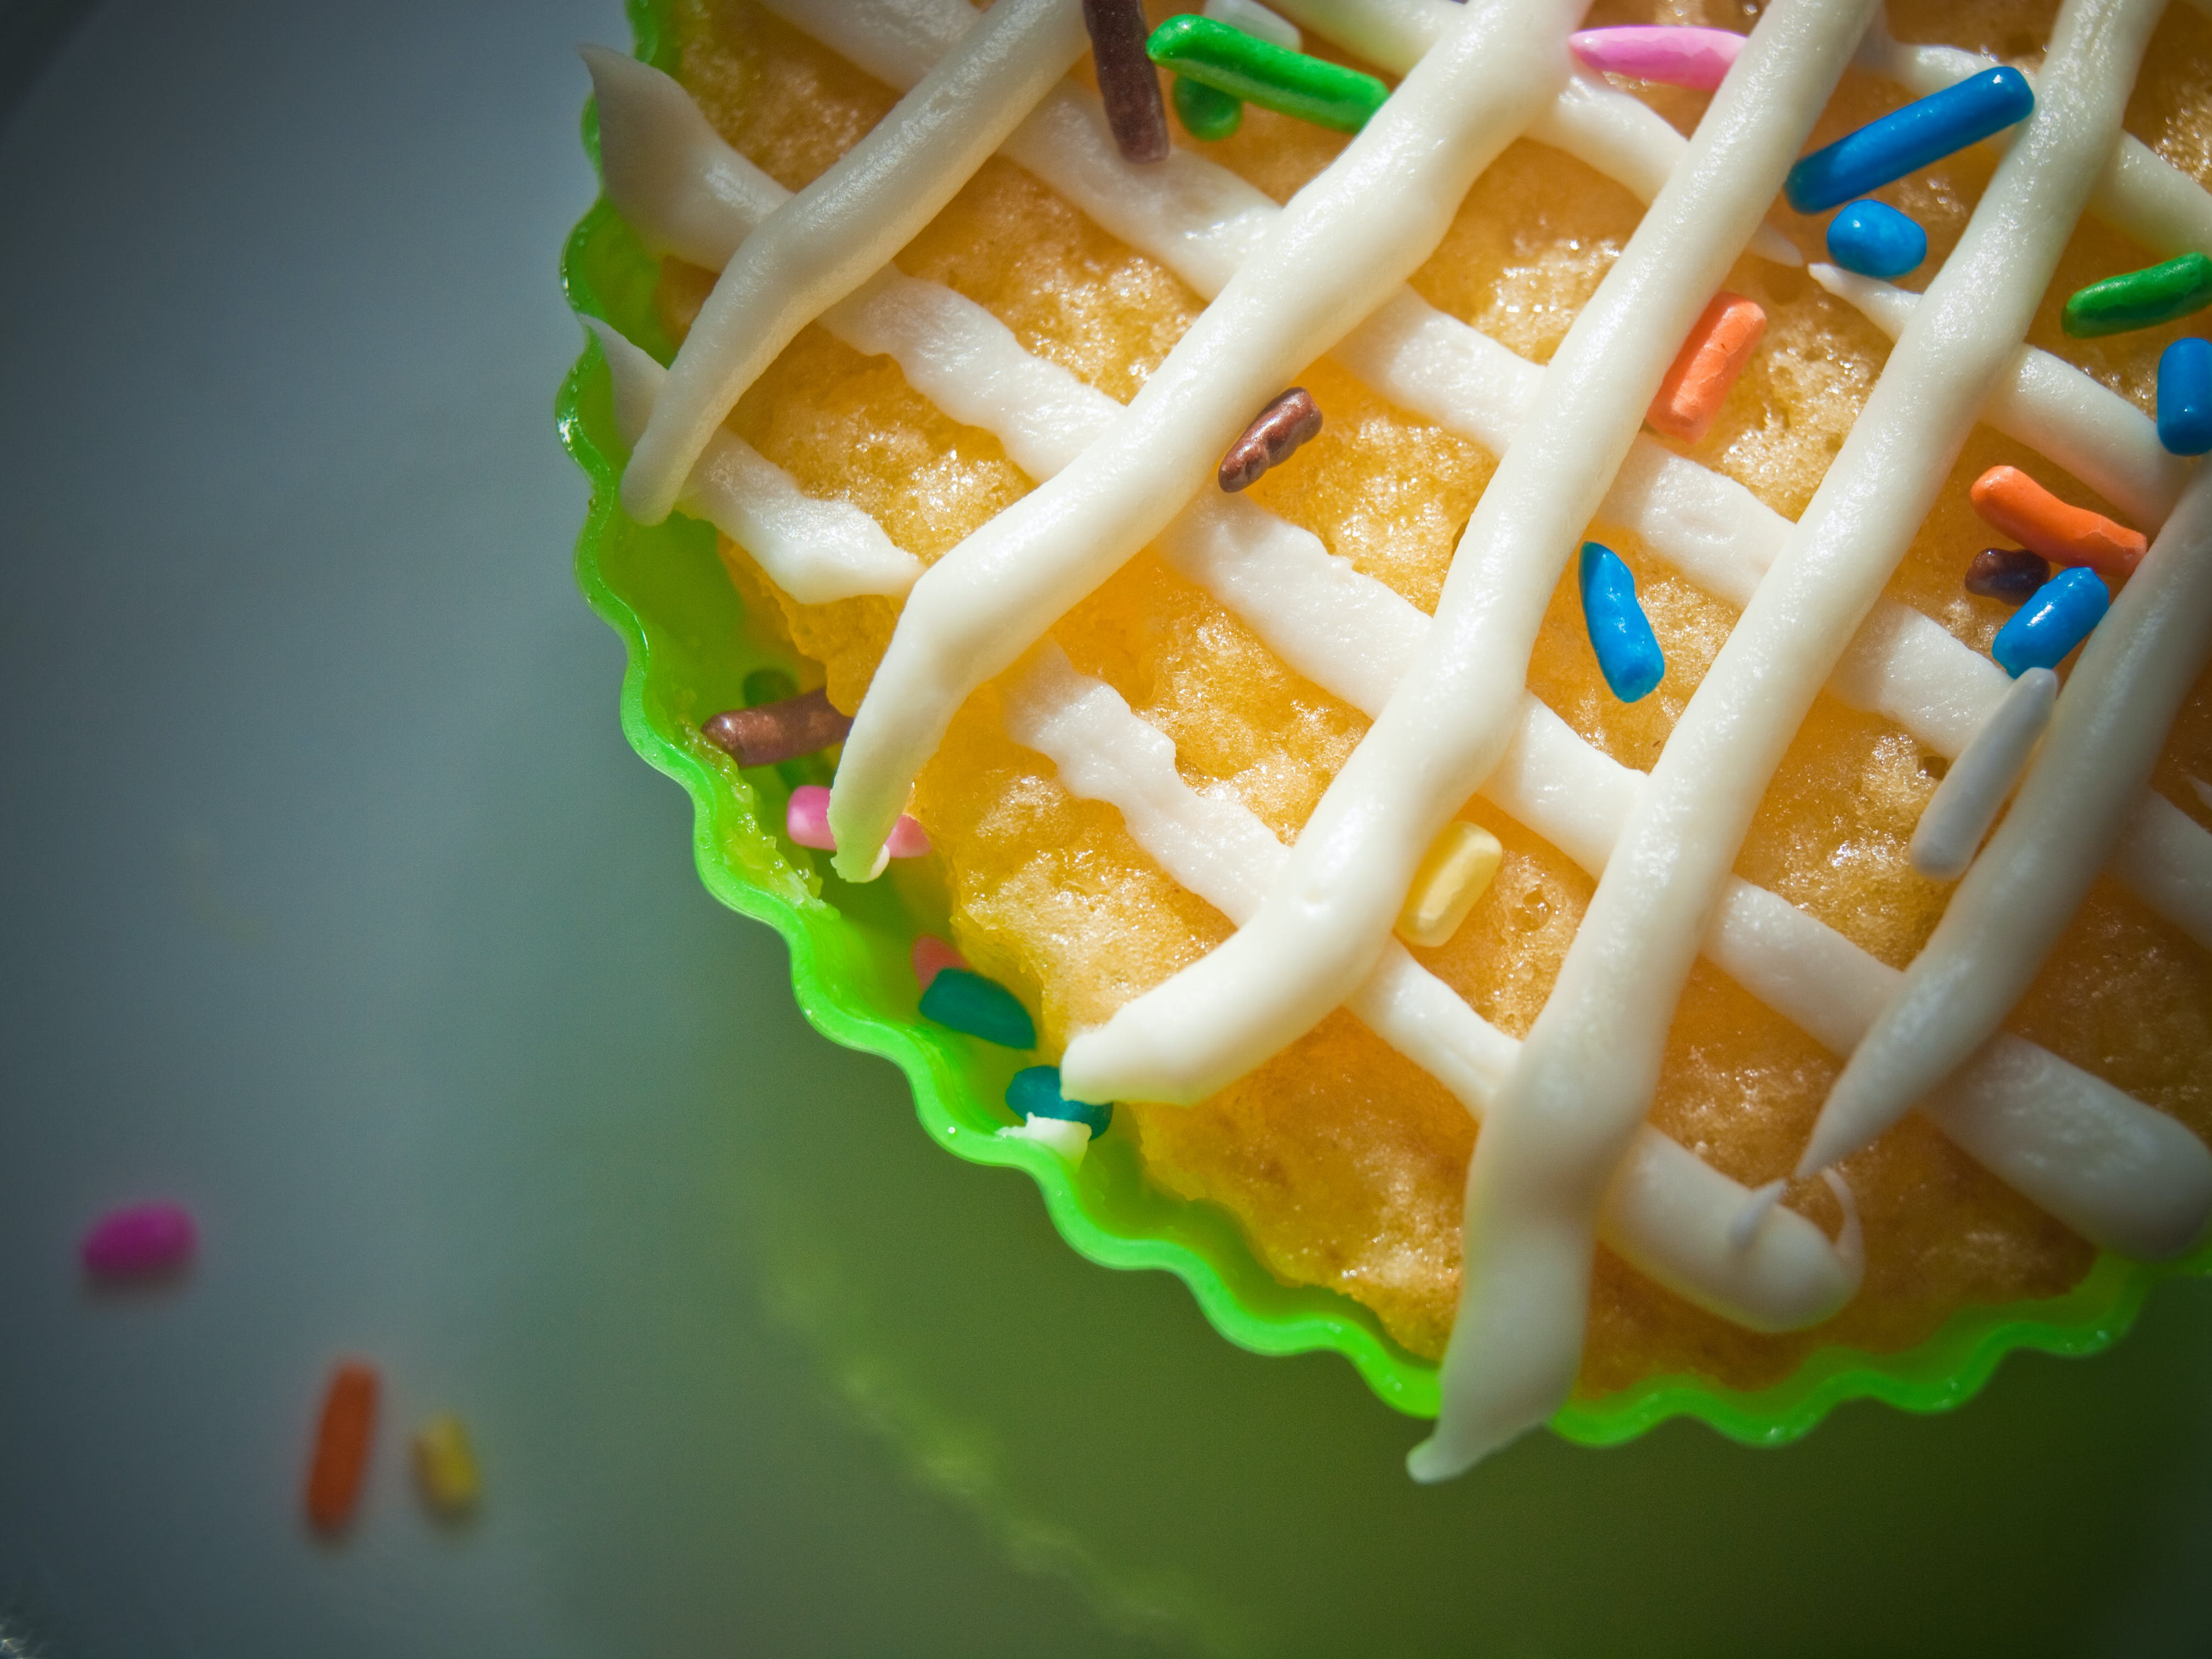 Cupcake With Candy Sprinklers on White Surface